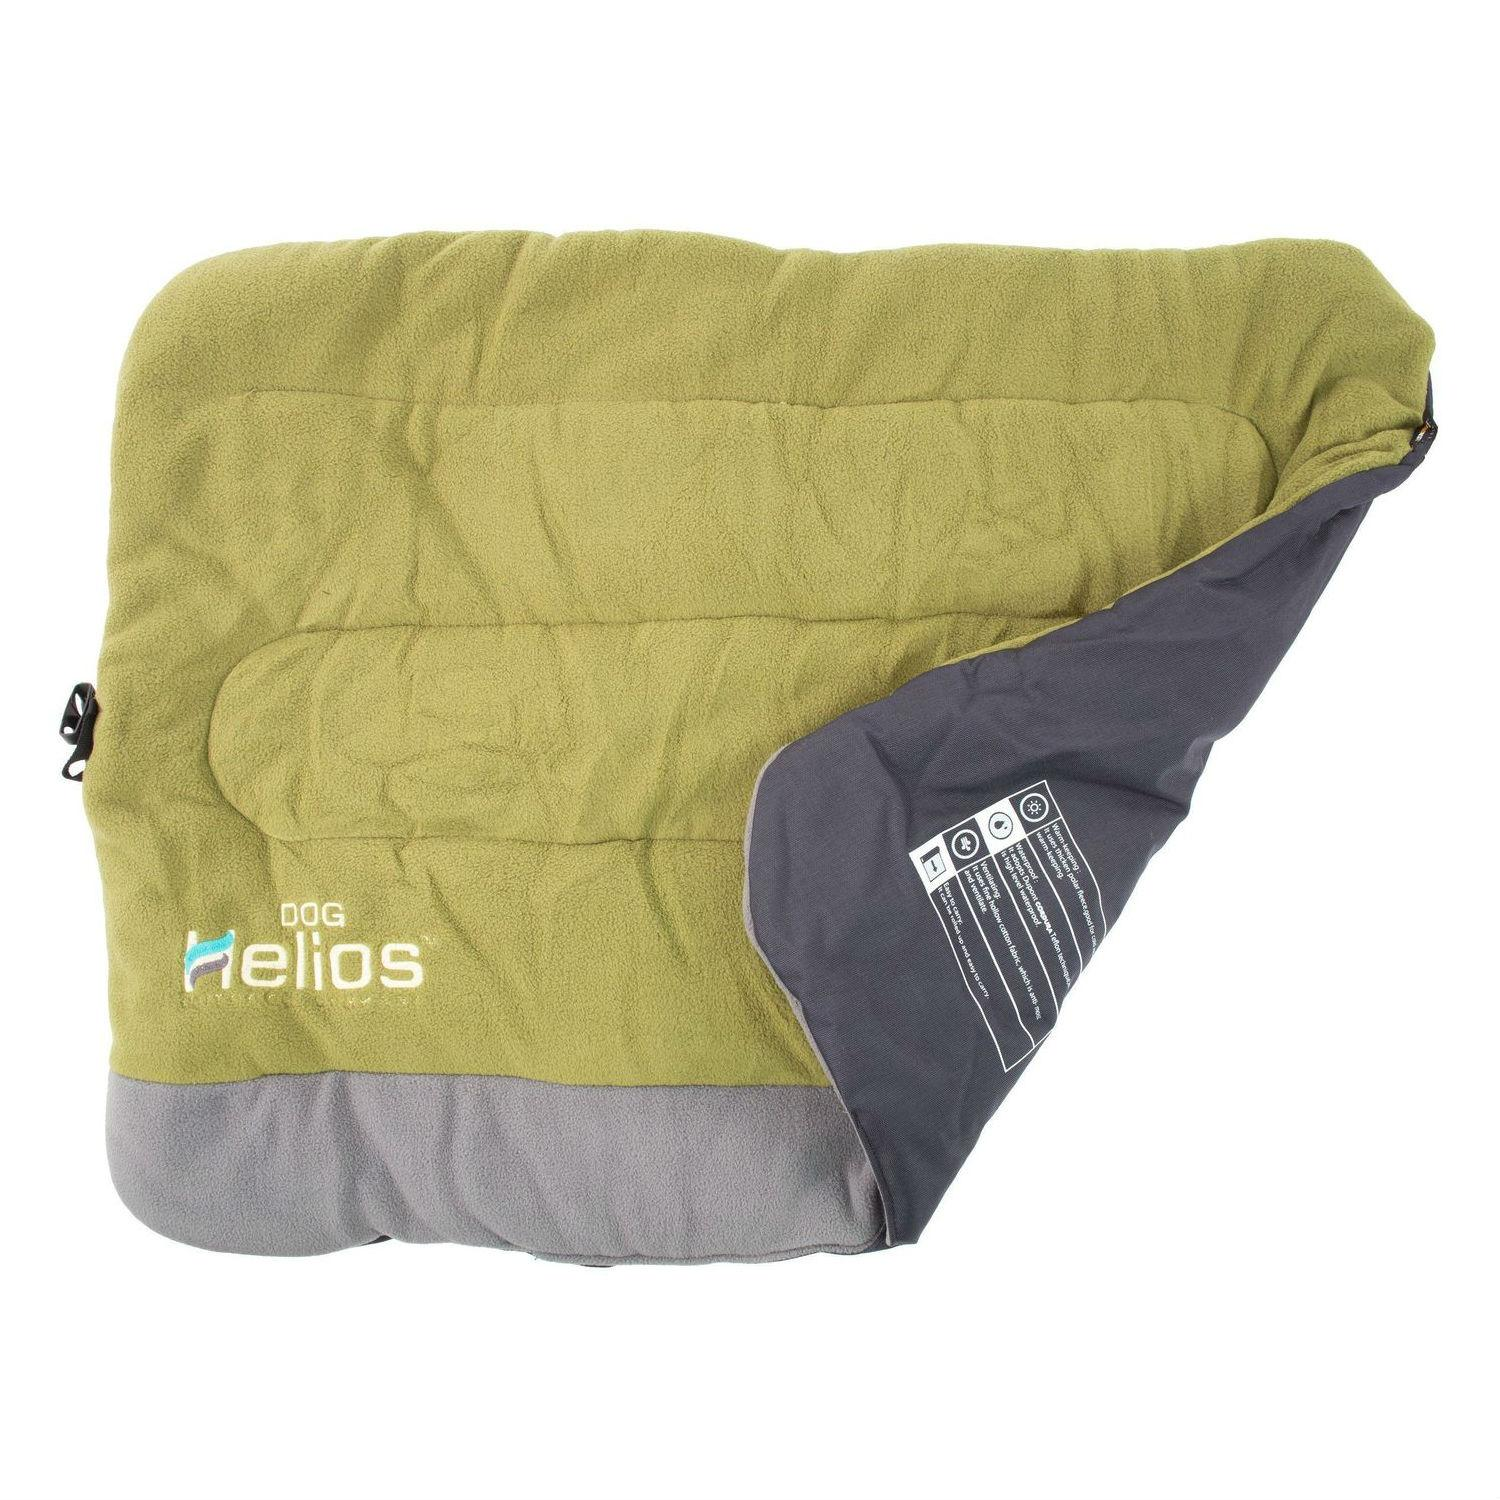 Pet Life Helios Combat-Terrain Cordura-Nyco Reversible Travel Camping Dog Bed - Olive Green